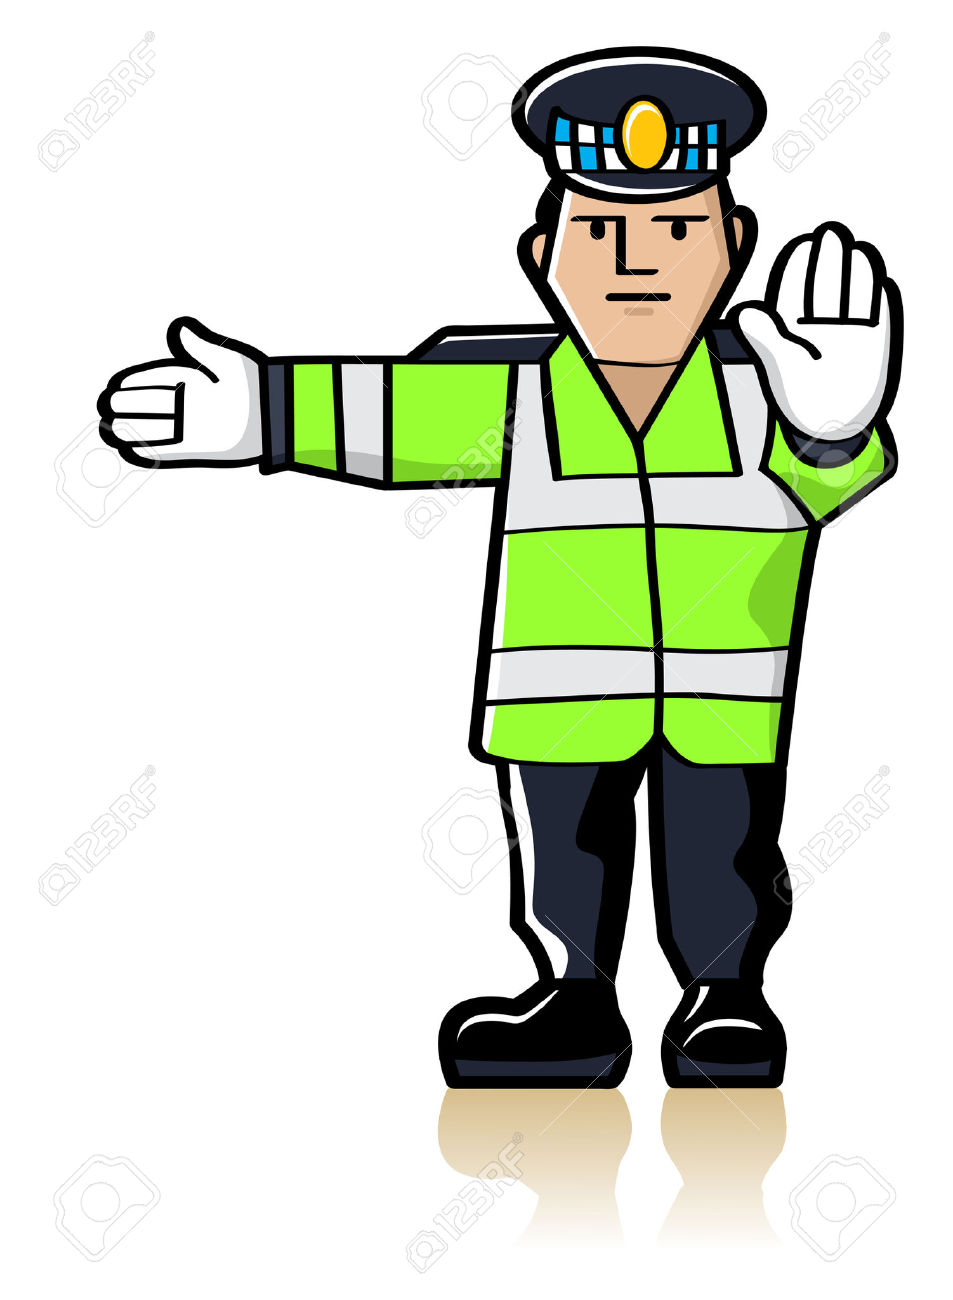 Traffic police clipart.